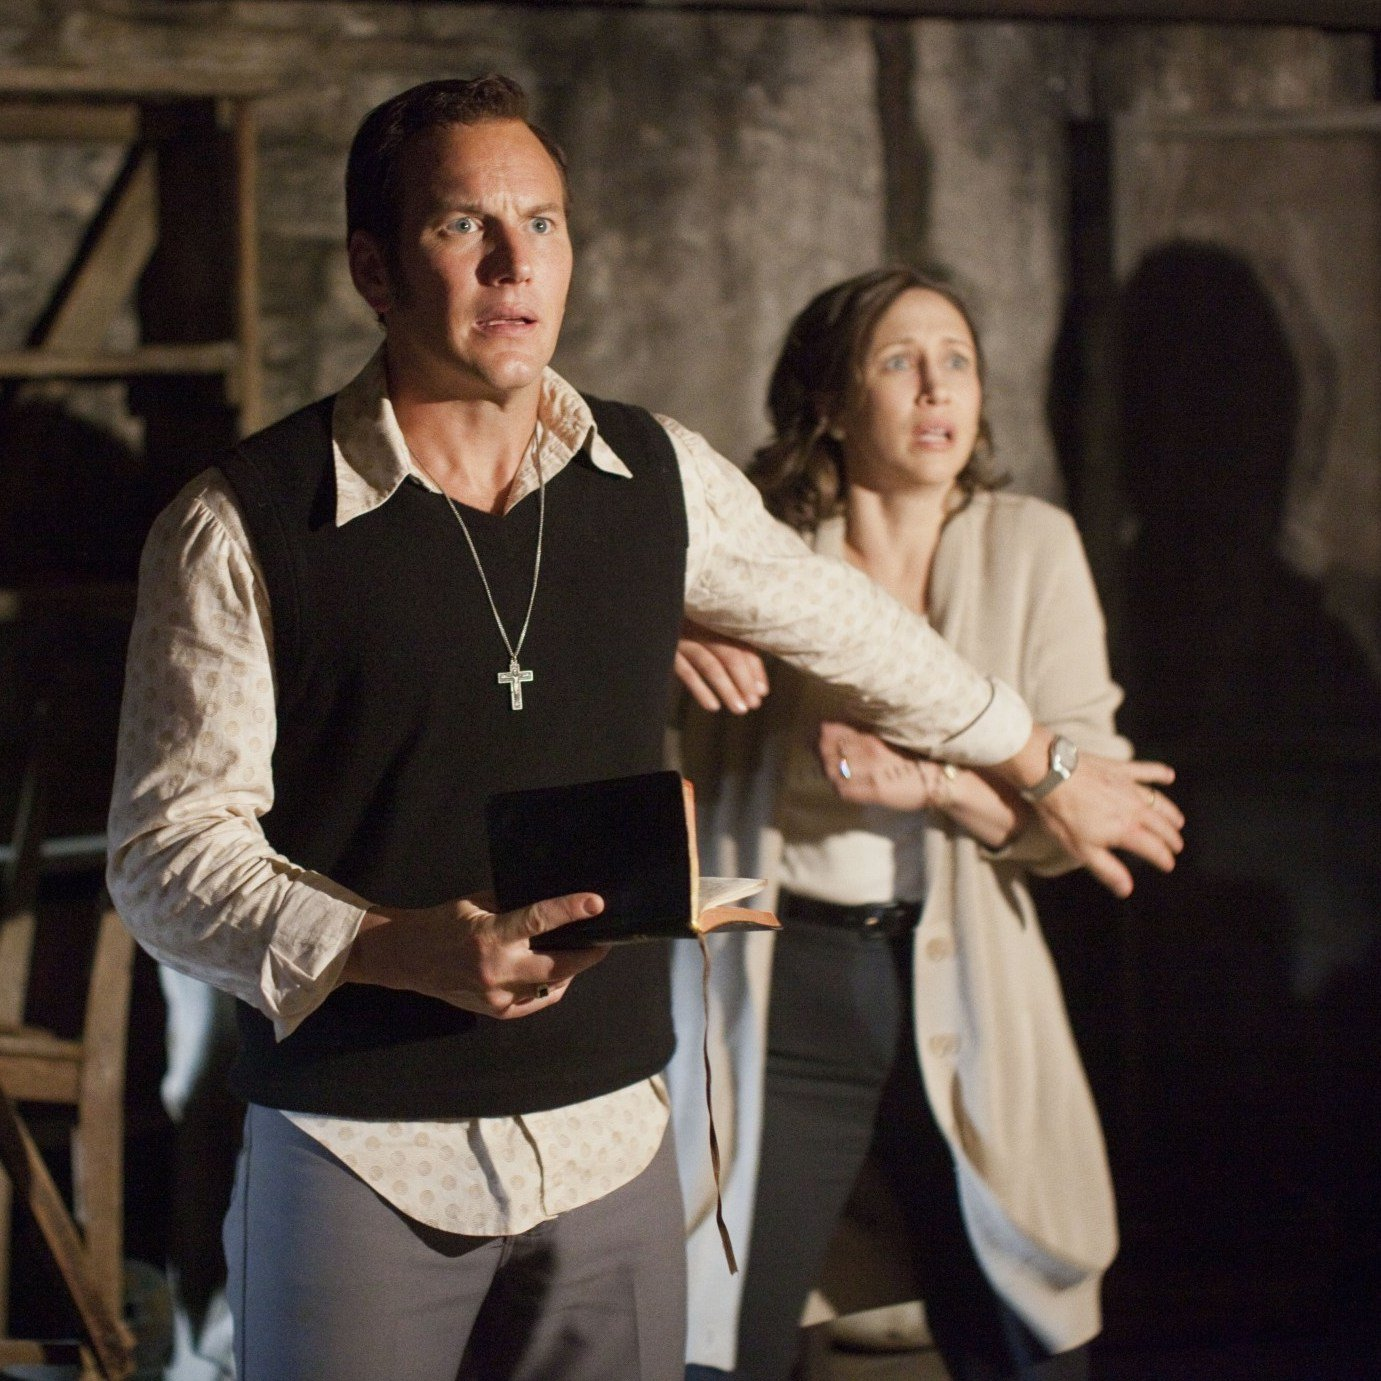 Still from The Conjuring Unexplainable Things That Happened On Movie Sets